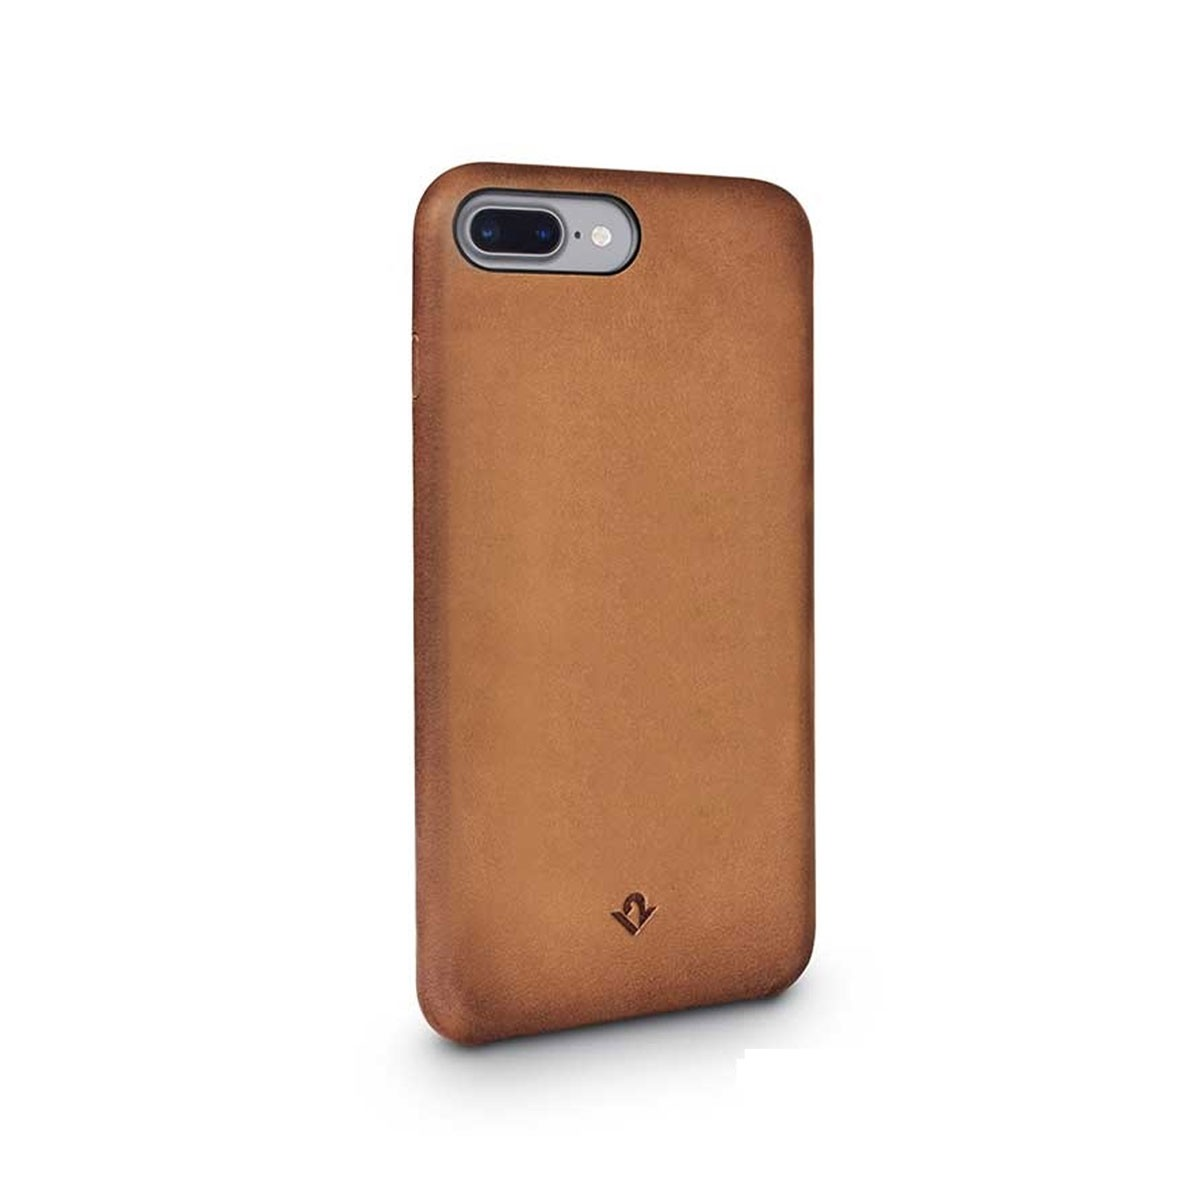 TwelveSouth Relaxed Leather Clip for iPhone 7 Plus - Cognac